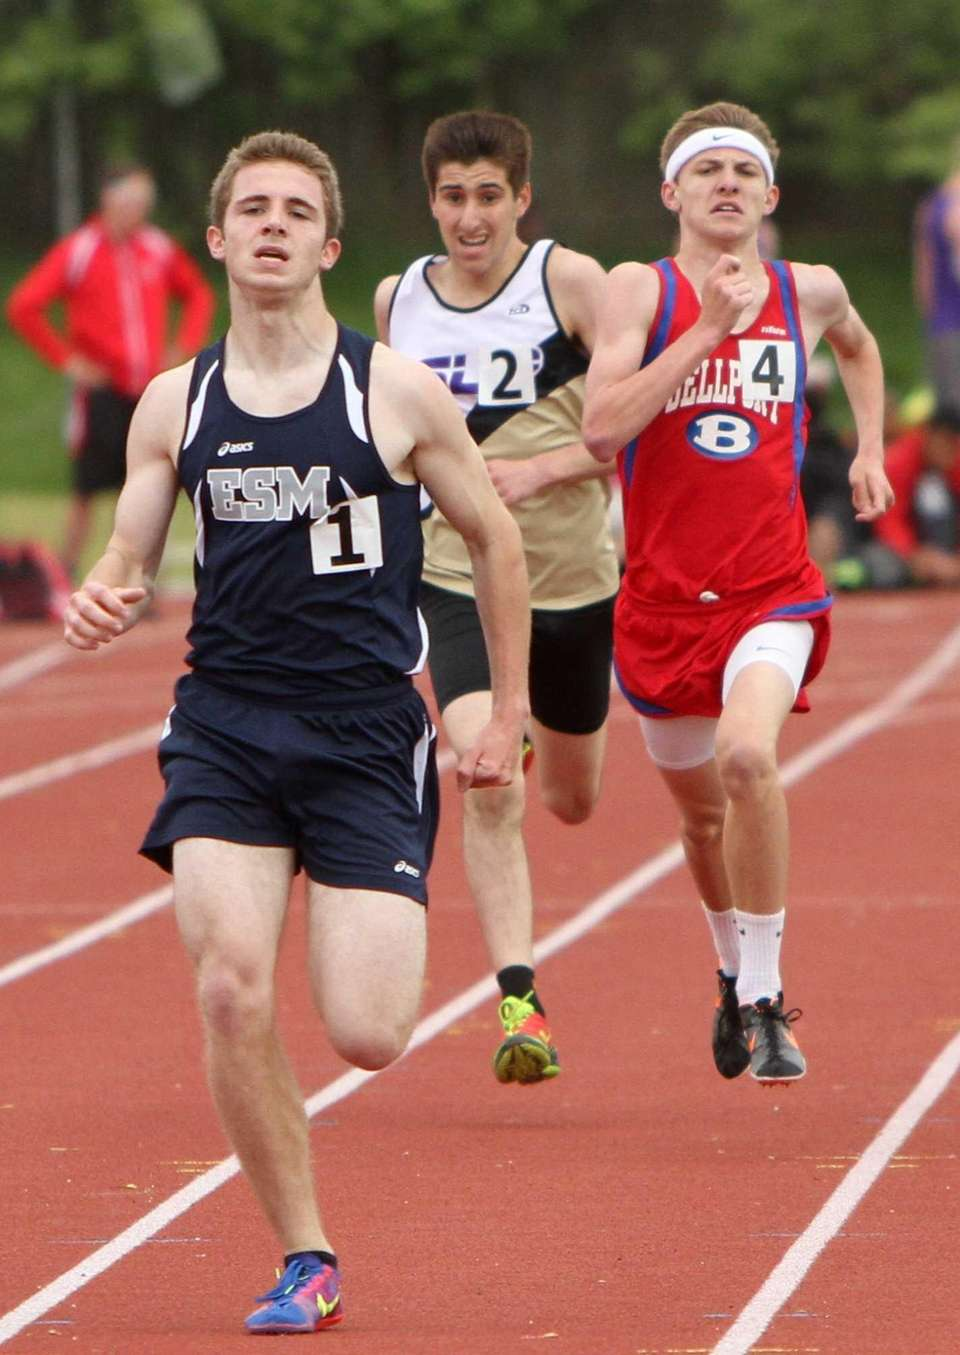 Thomas Meehan of Eastport-South Manor wins the 1600M